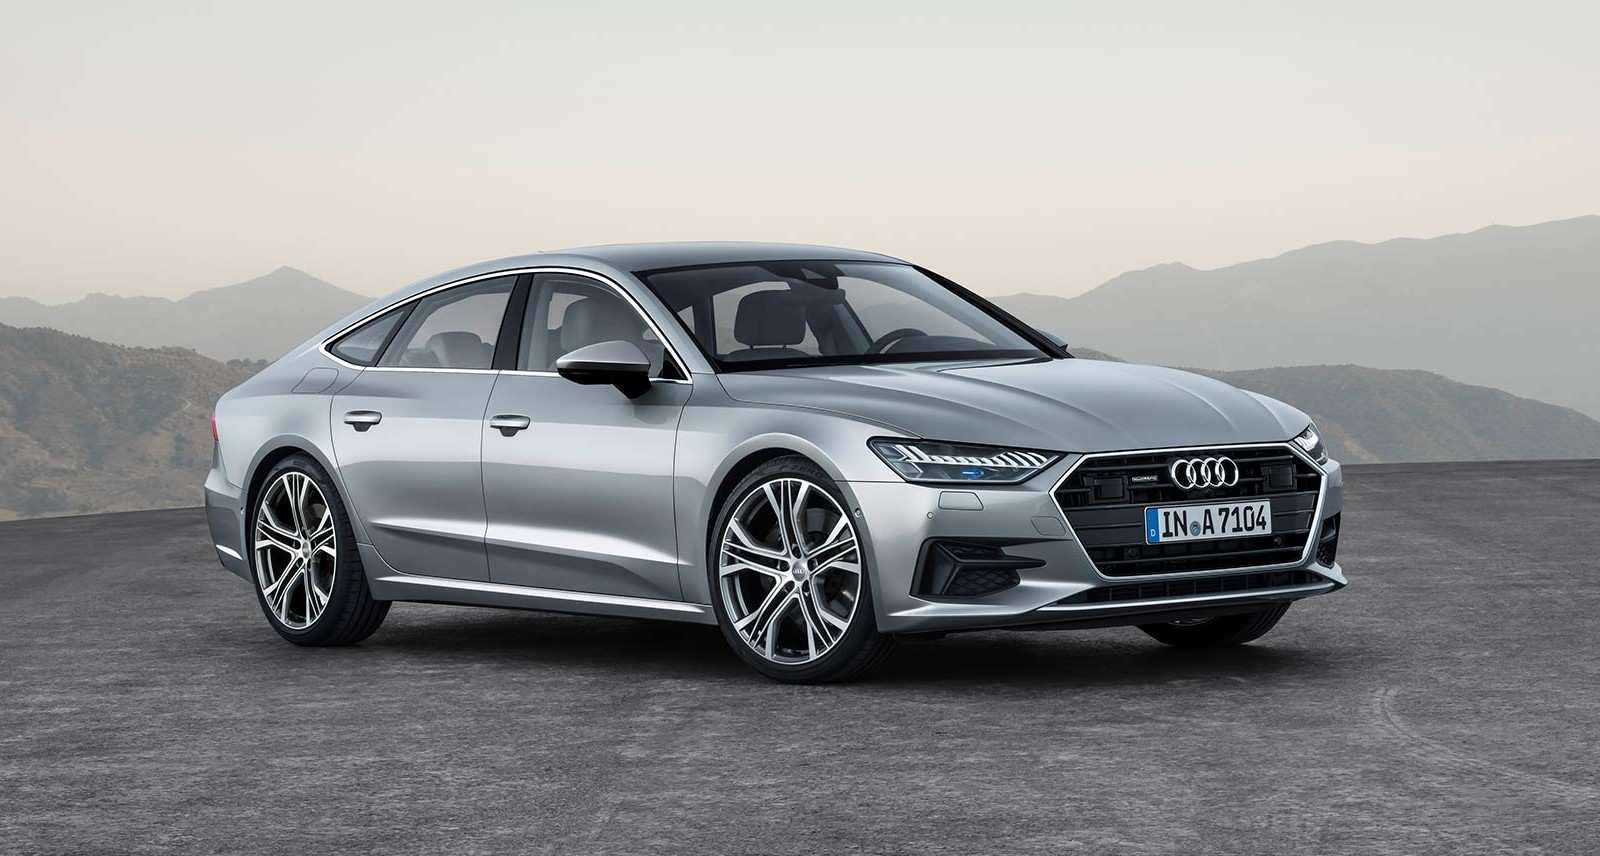 78 The 2019 Audi A7 Images by 2019 Audi A7